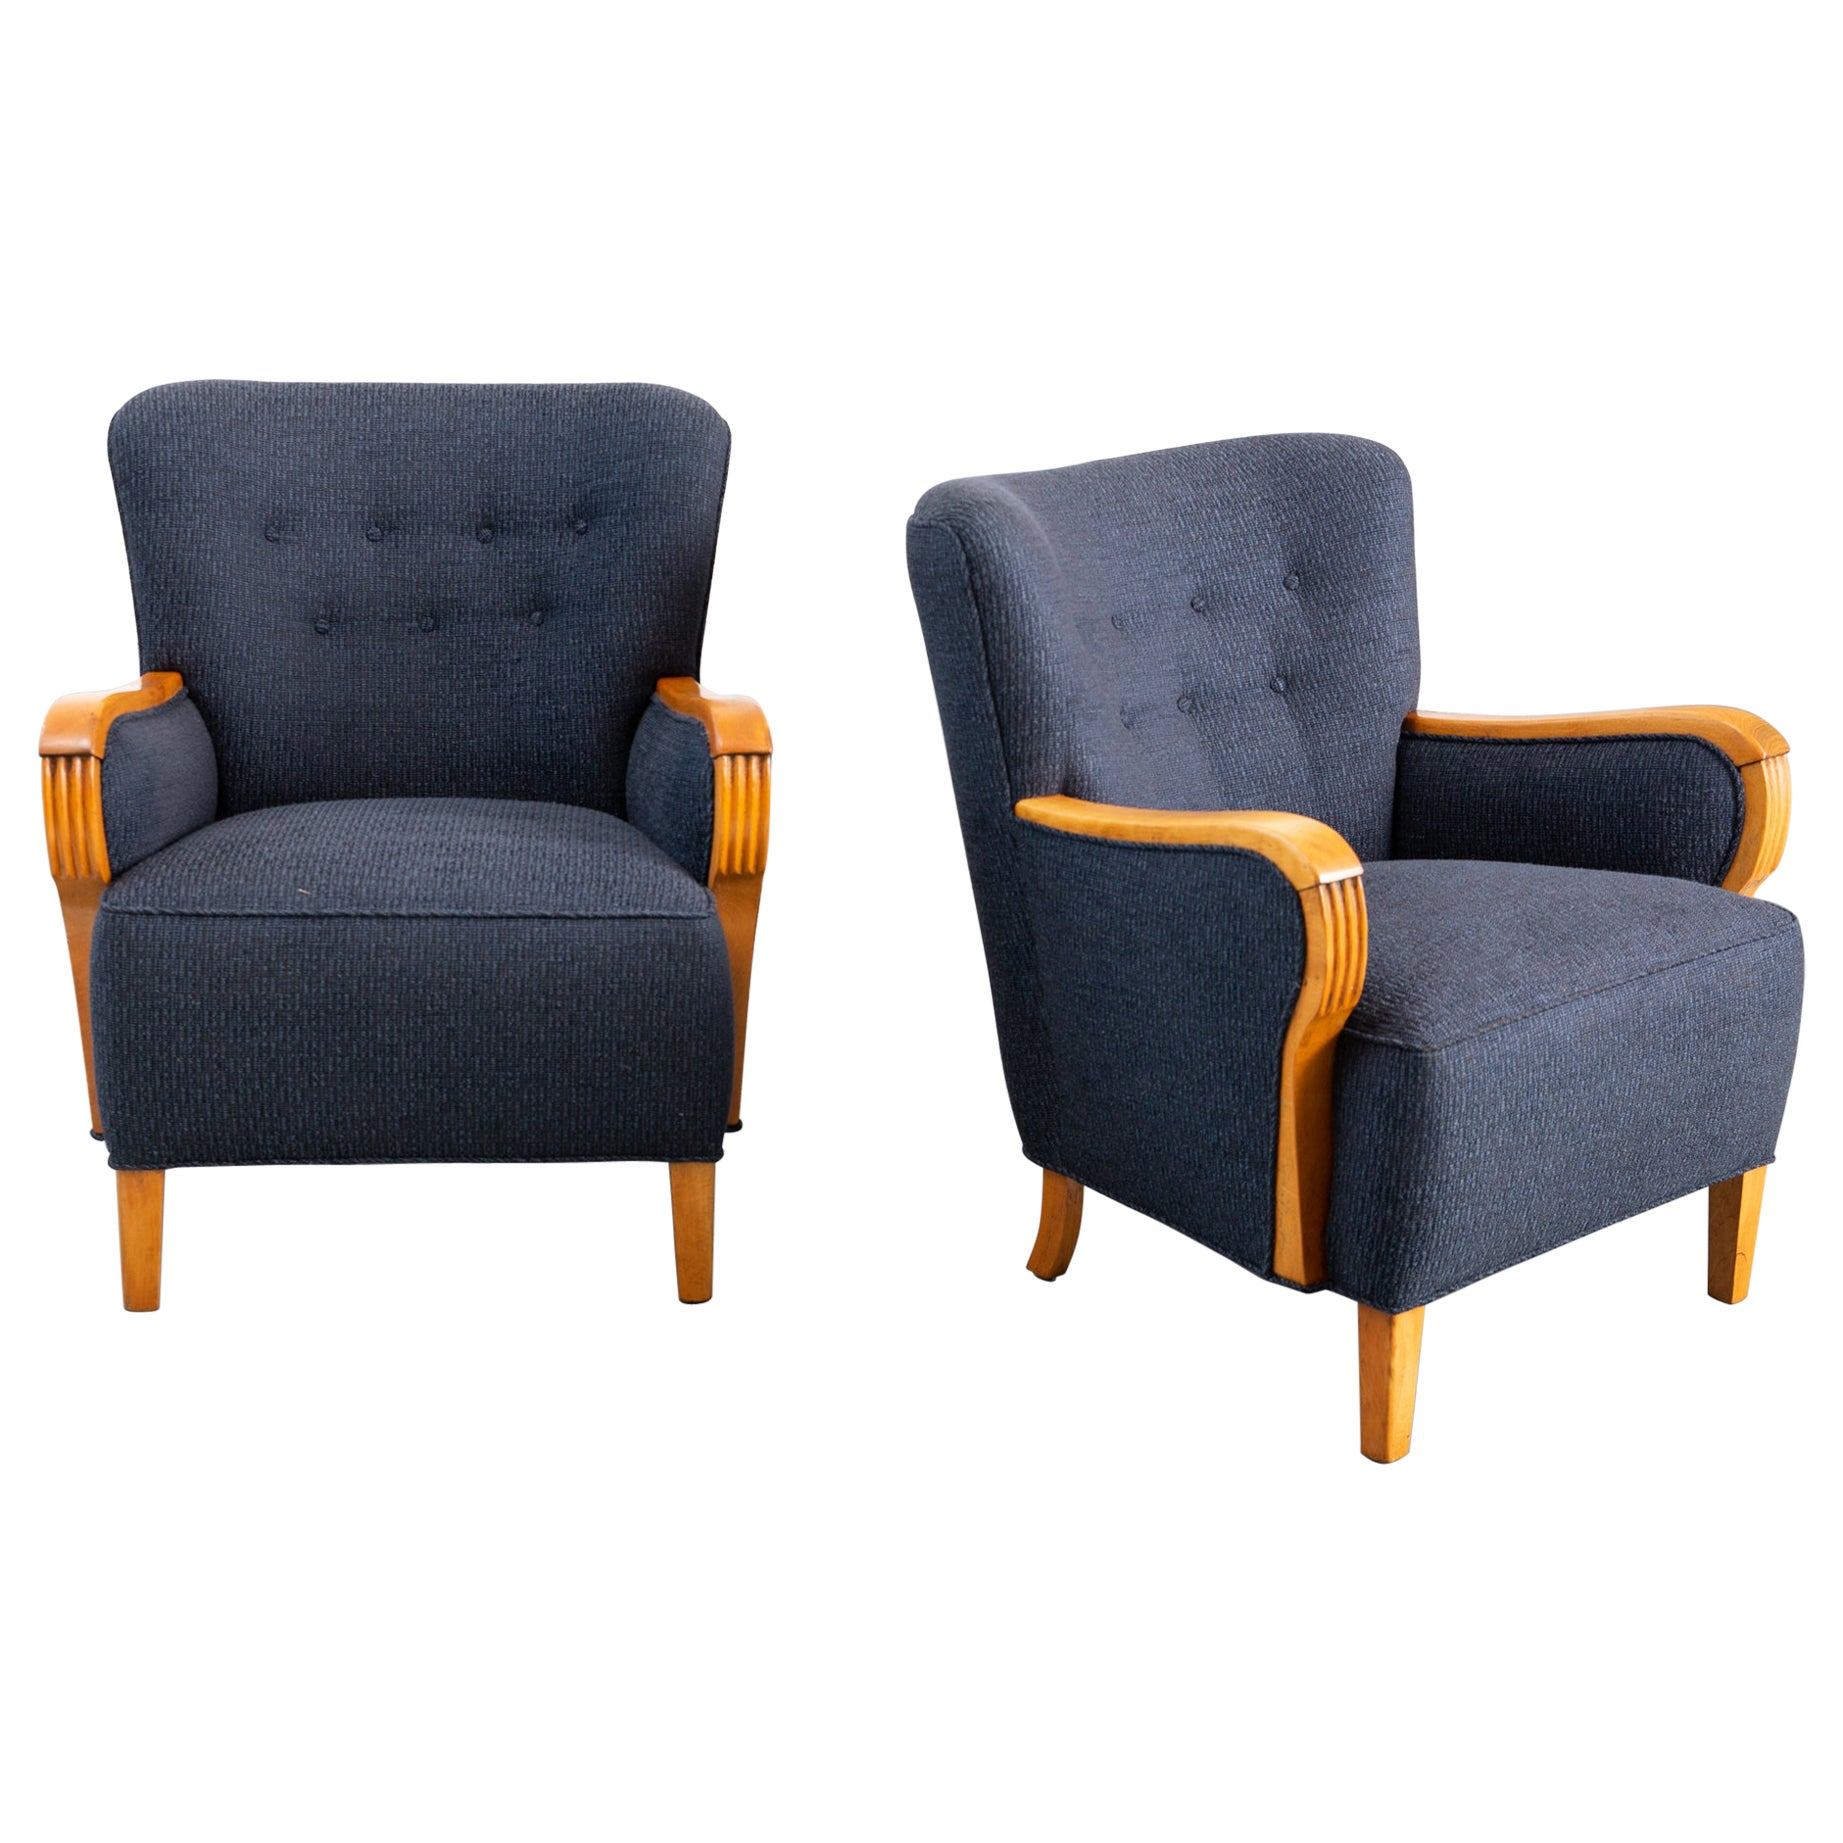 Pair of Newly Upholstered Mid-Century Modern 1940s Armchairs